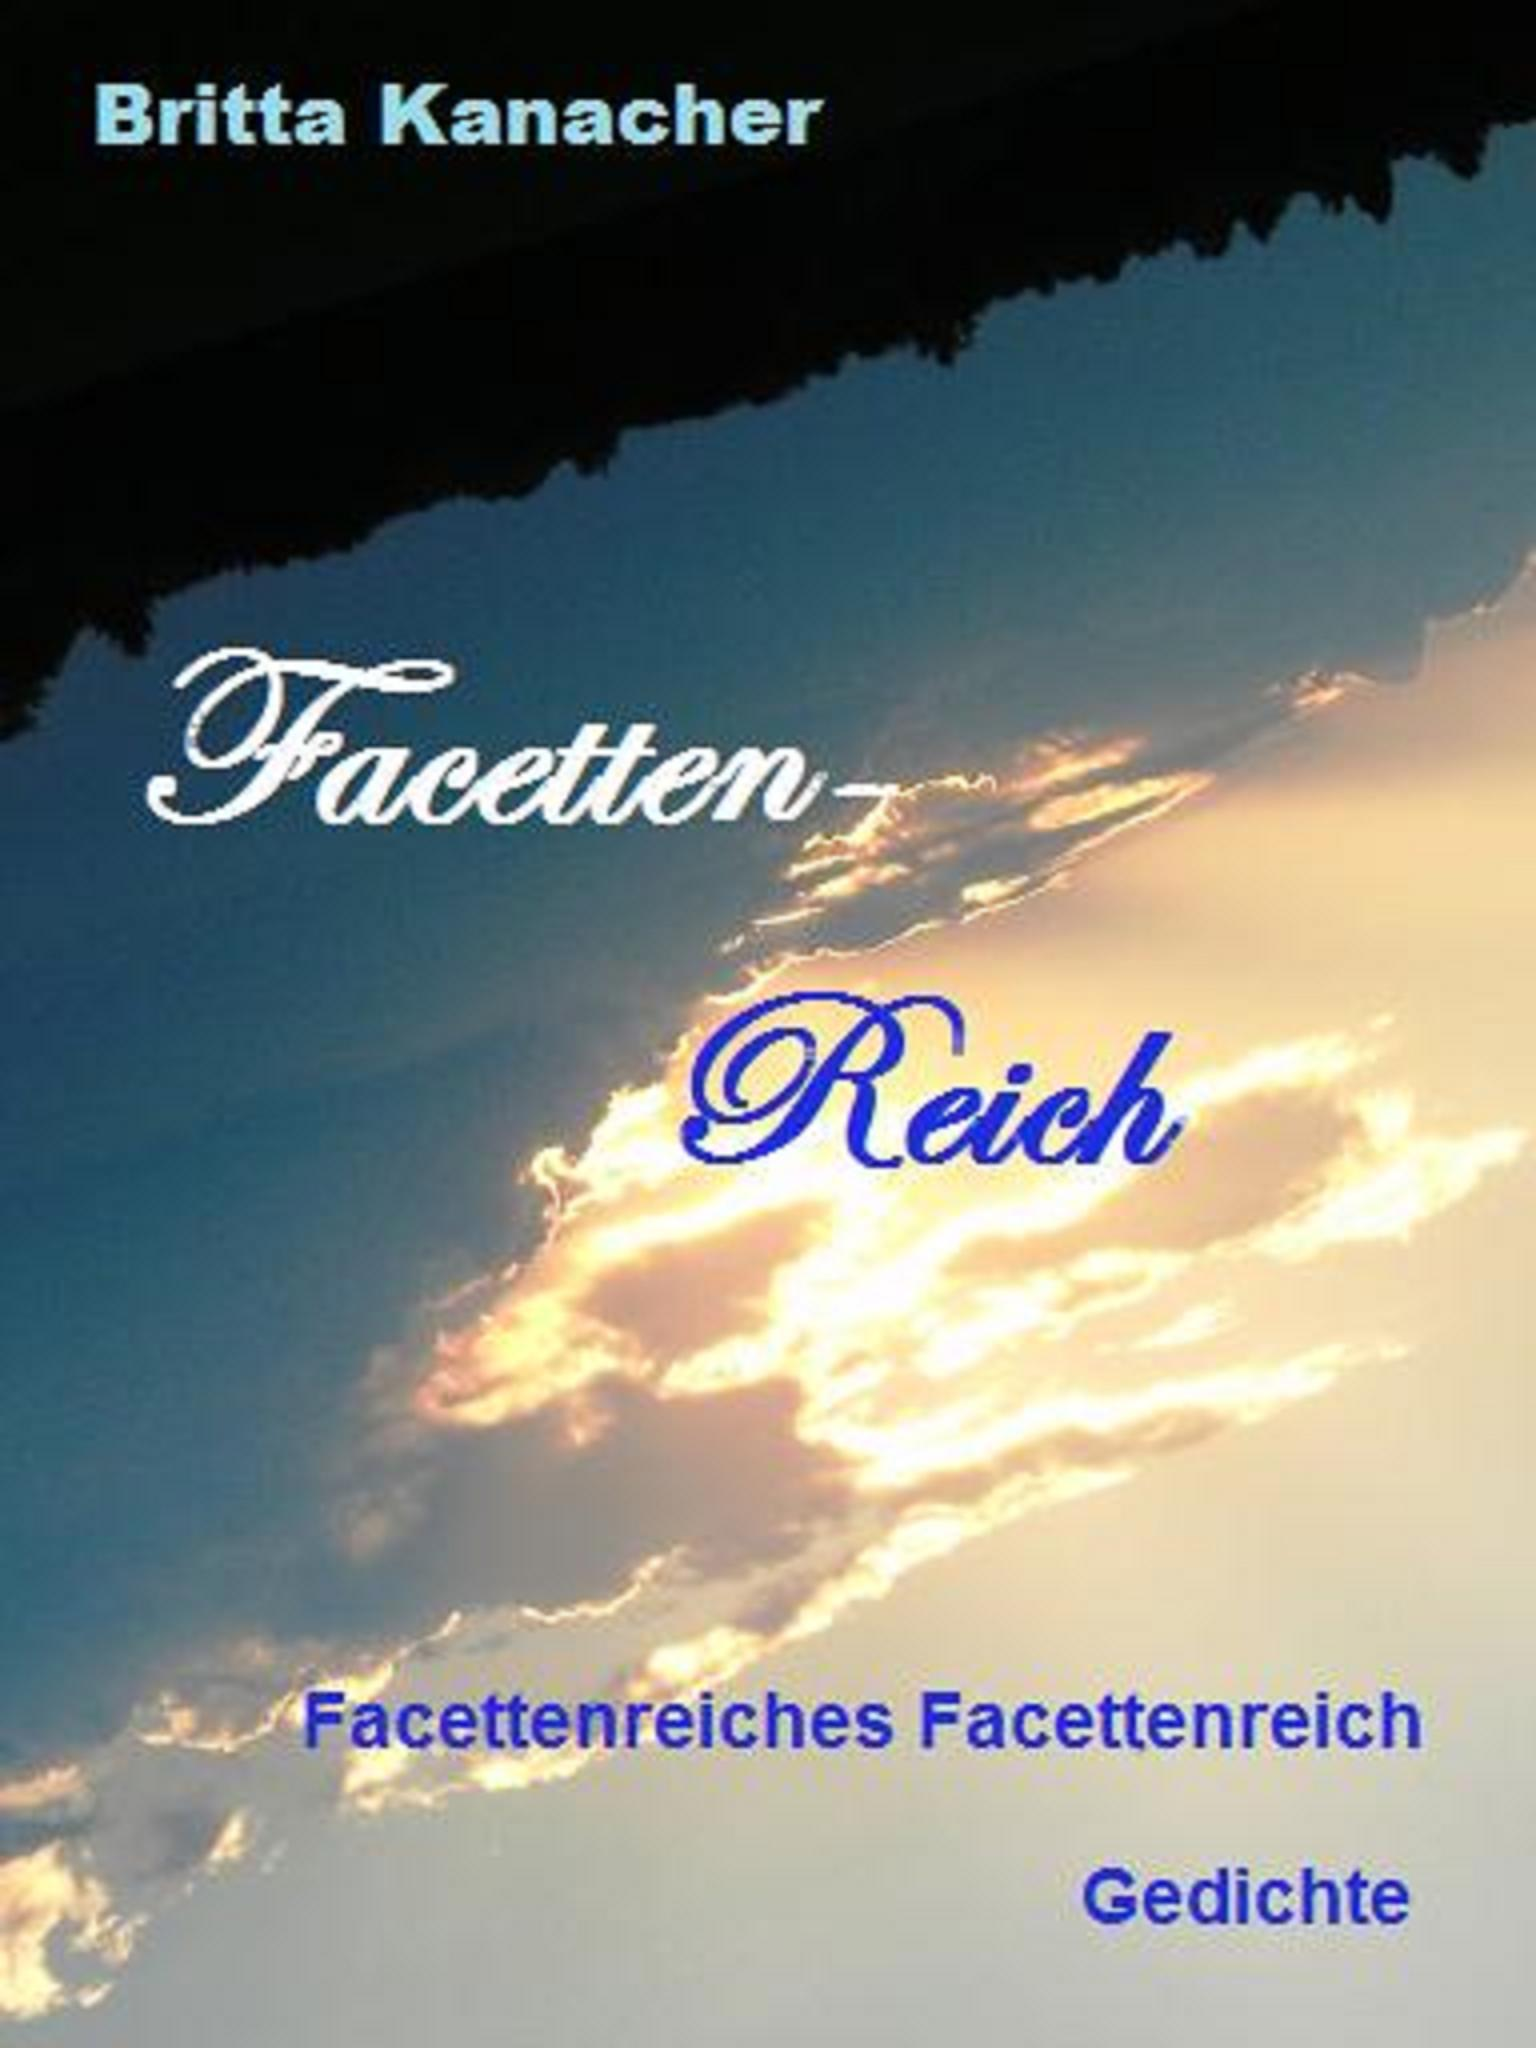 Britta Kanacher: Facettenreiches Facettenreich